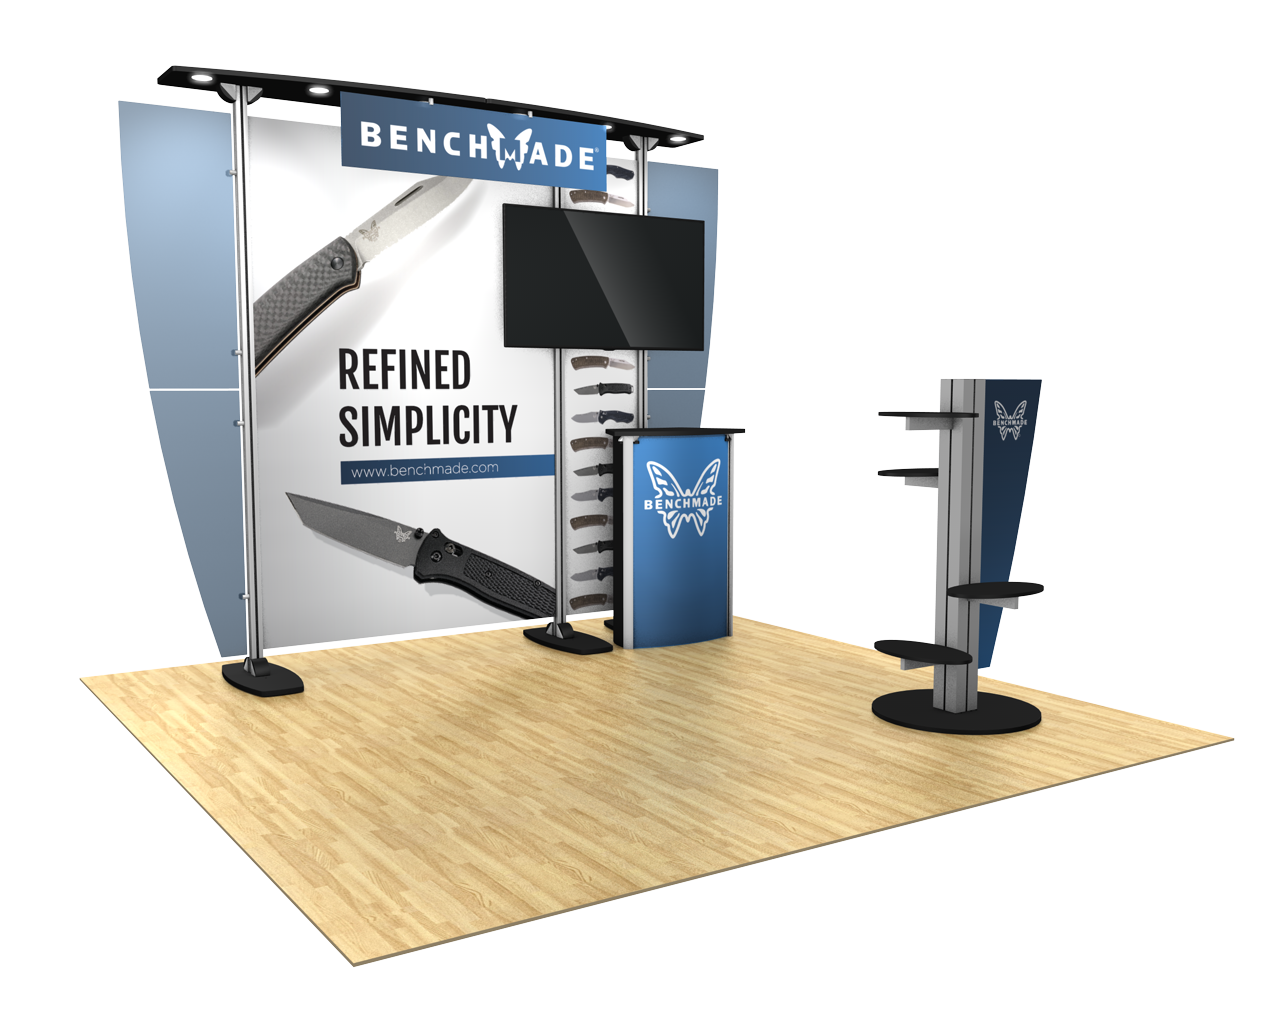 Exhibitline 10ft Trade Show Display Kit - 10.11